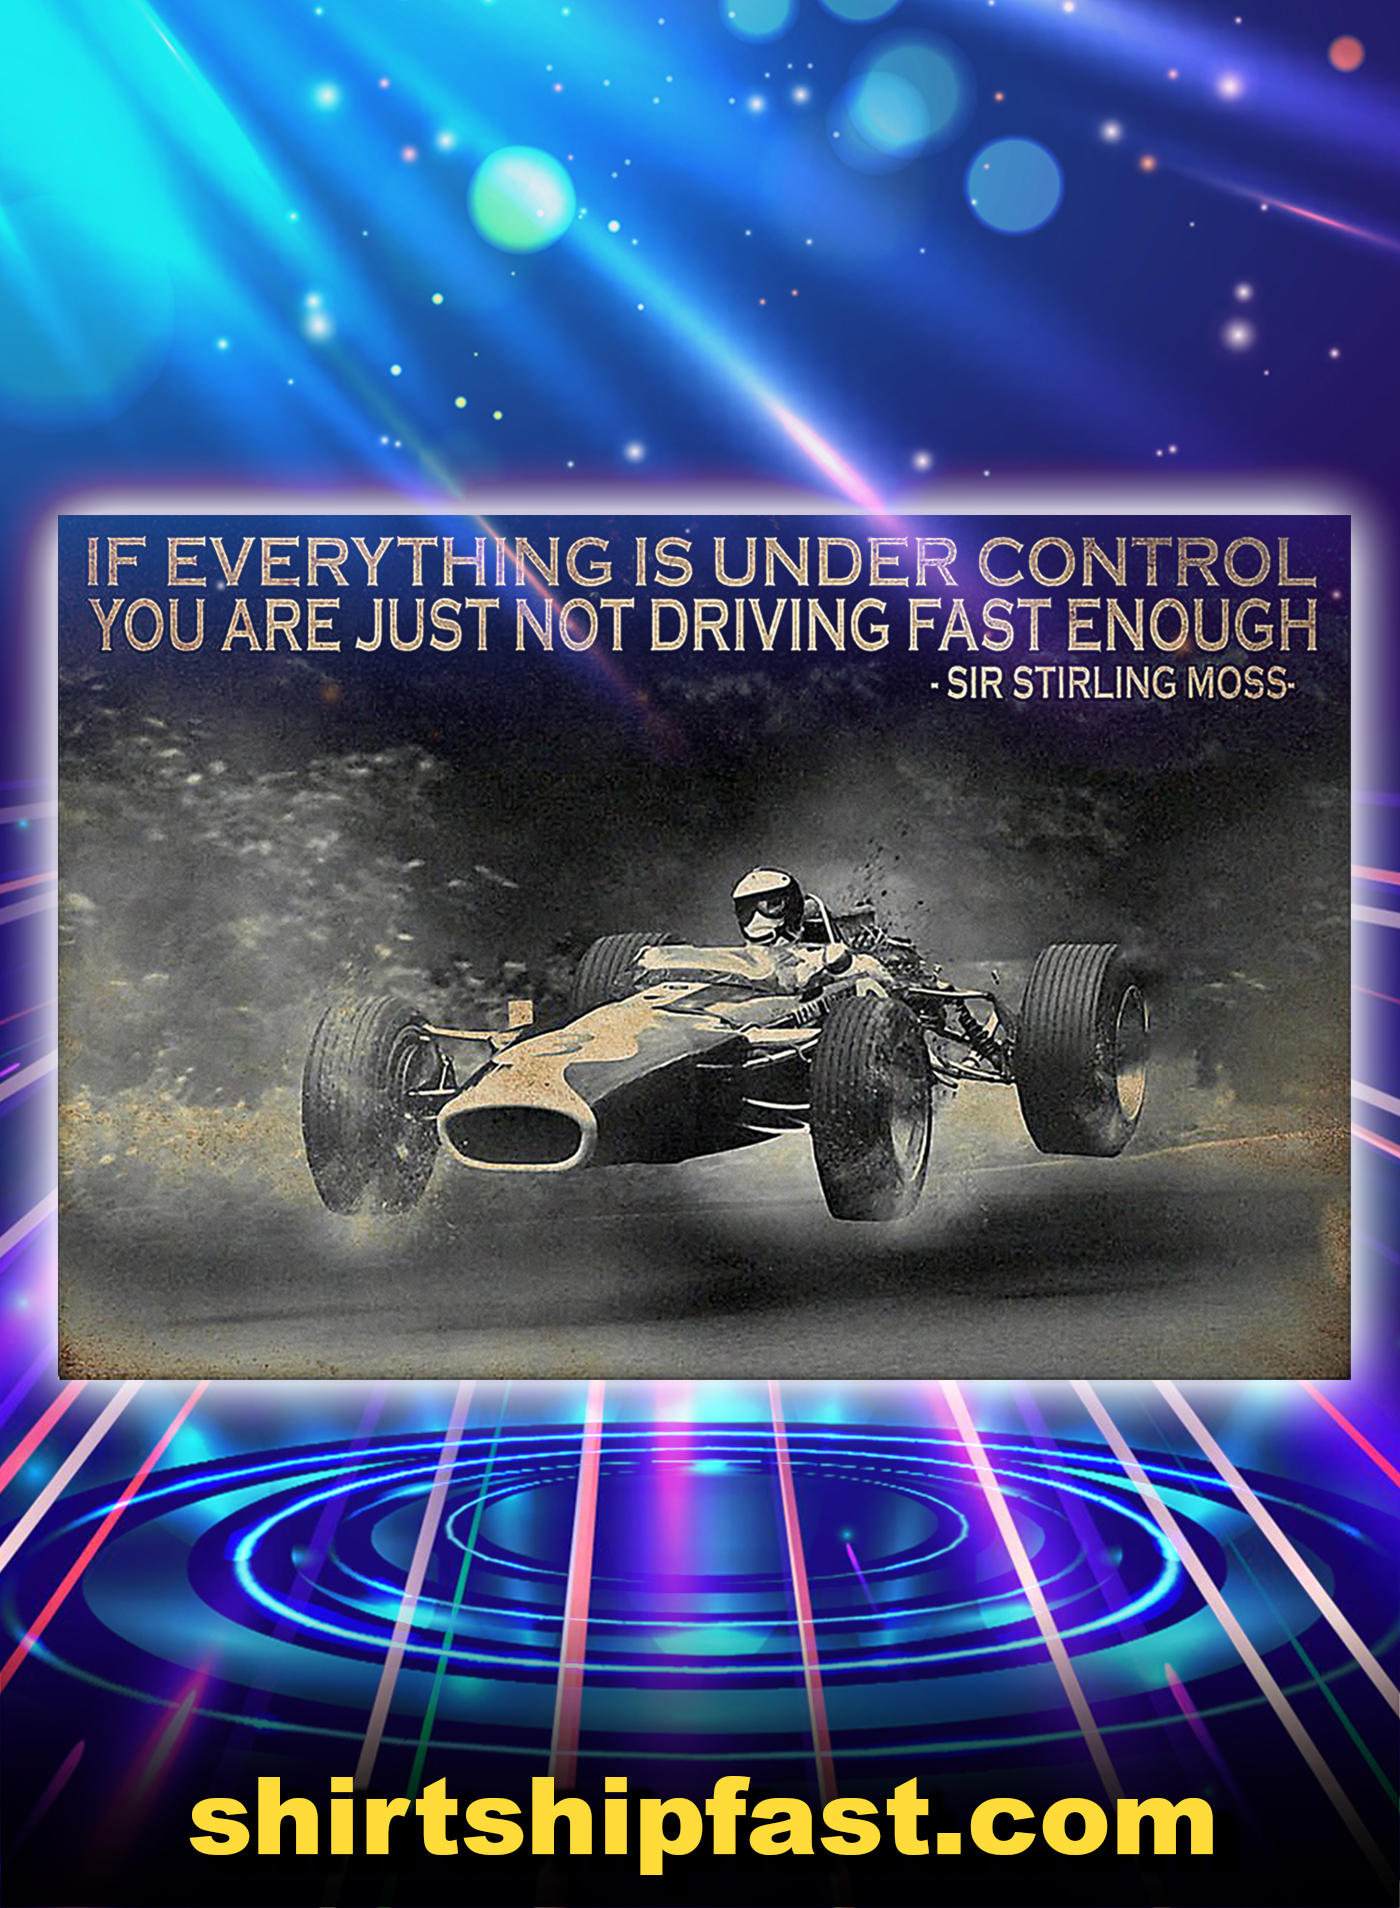 Motorsport racing if everything is under control poster - A1